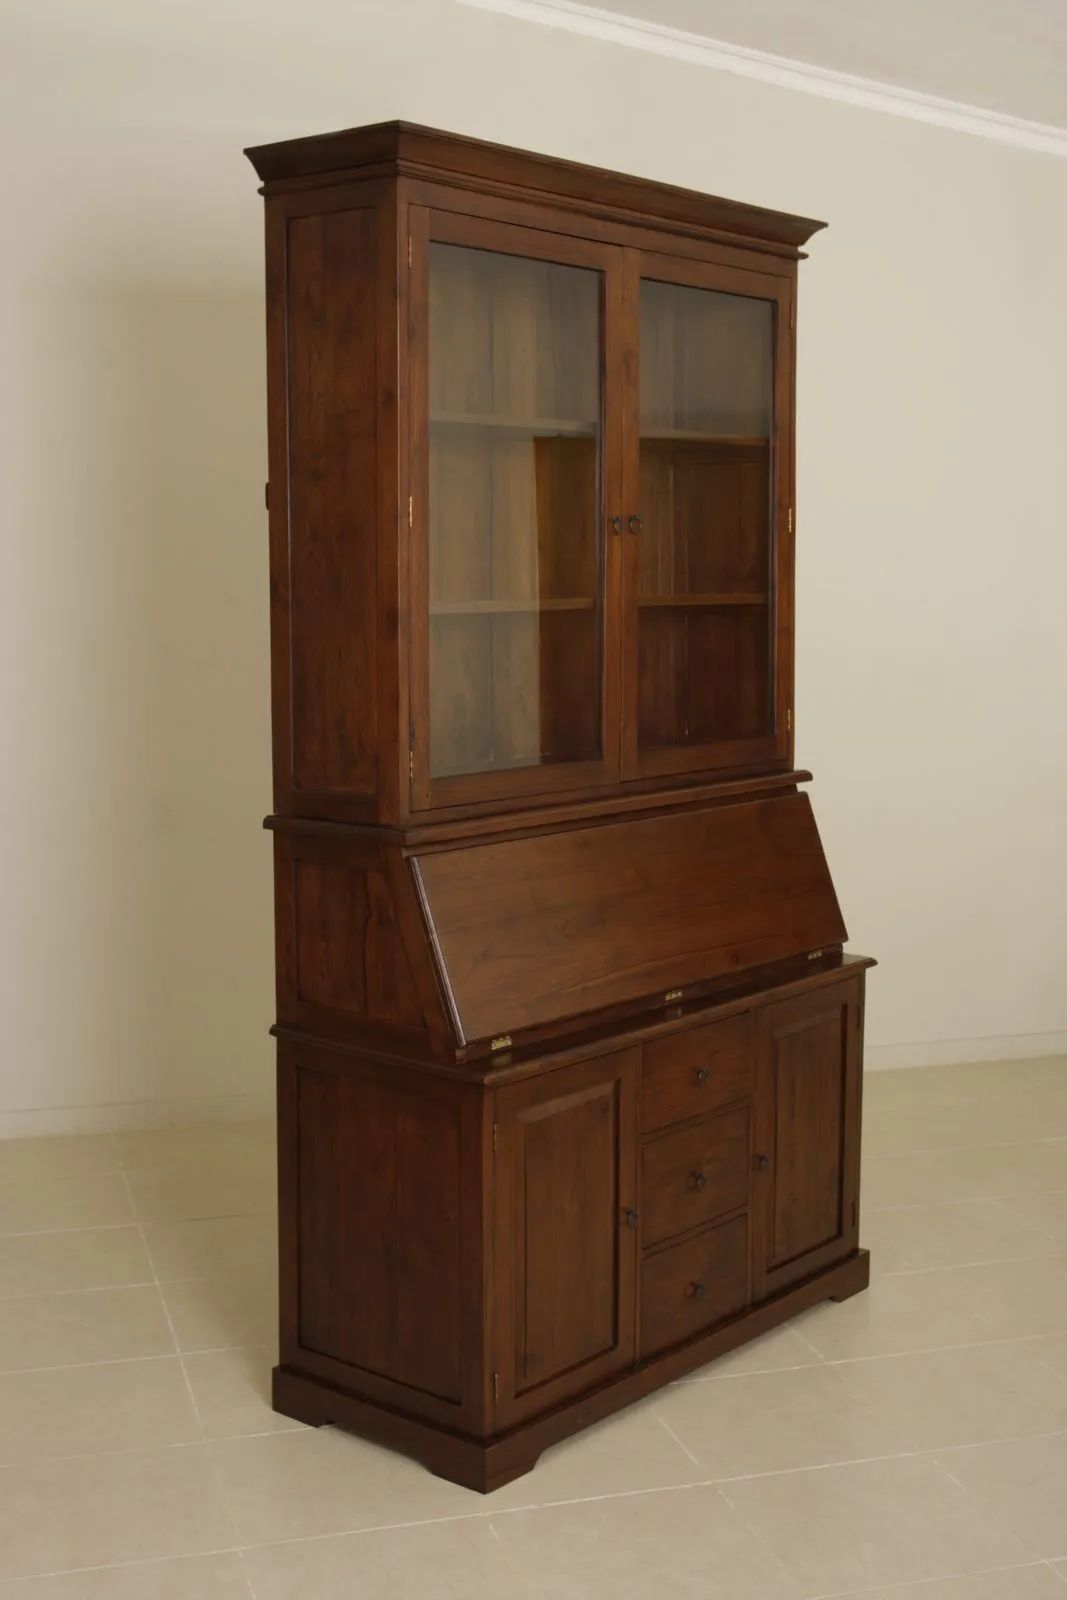 Flip down top desk with glass doors hutch made of Mindi wood